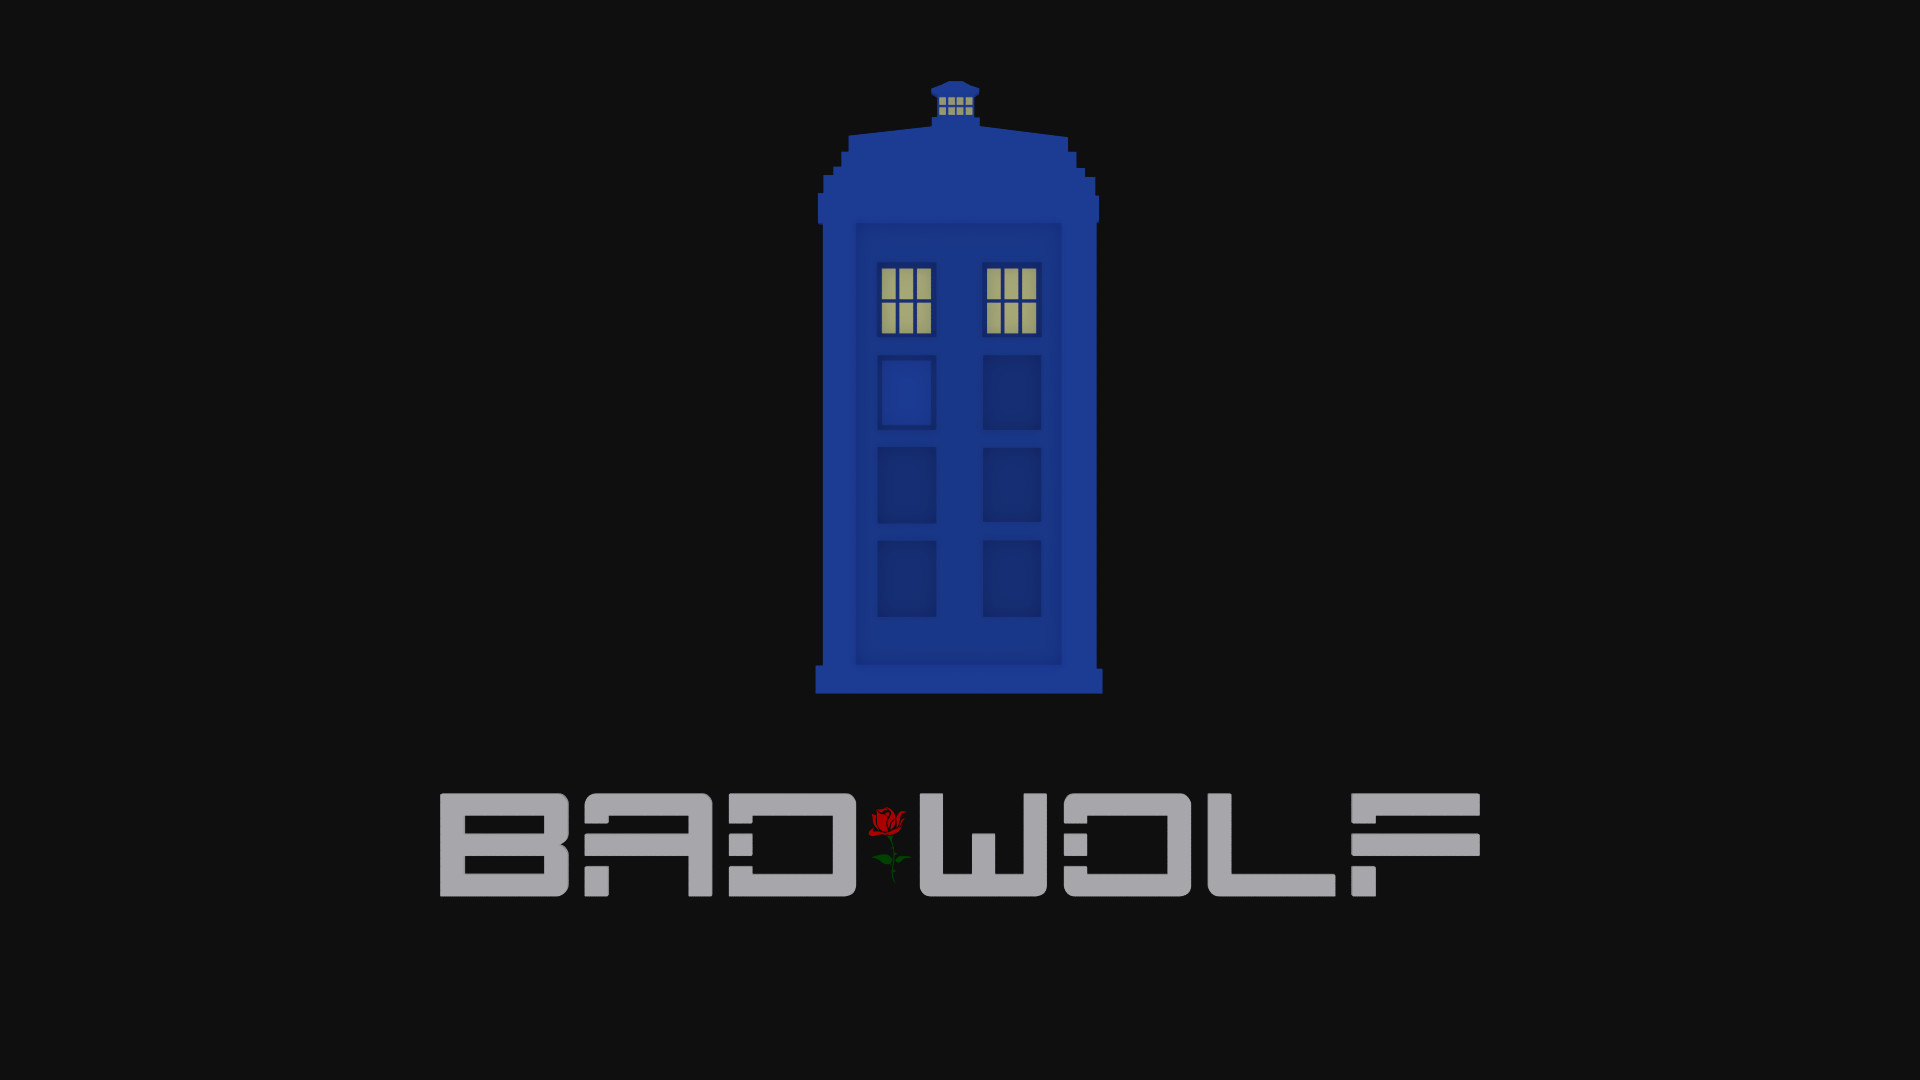 Doctor Who Rose Bad Wolf wallpaper | Cool Desktop Wallpaper | Pinterest |  Bad wolf, Tardis and Wallpaper